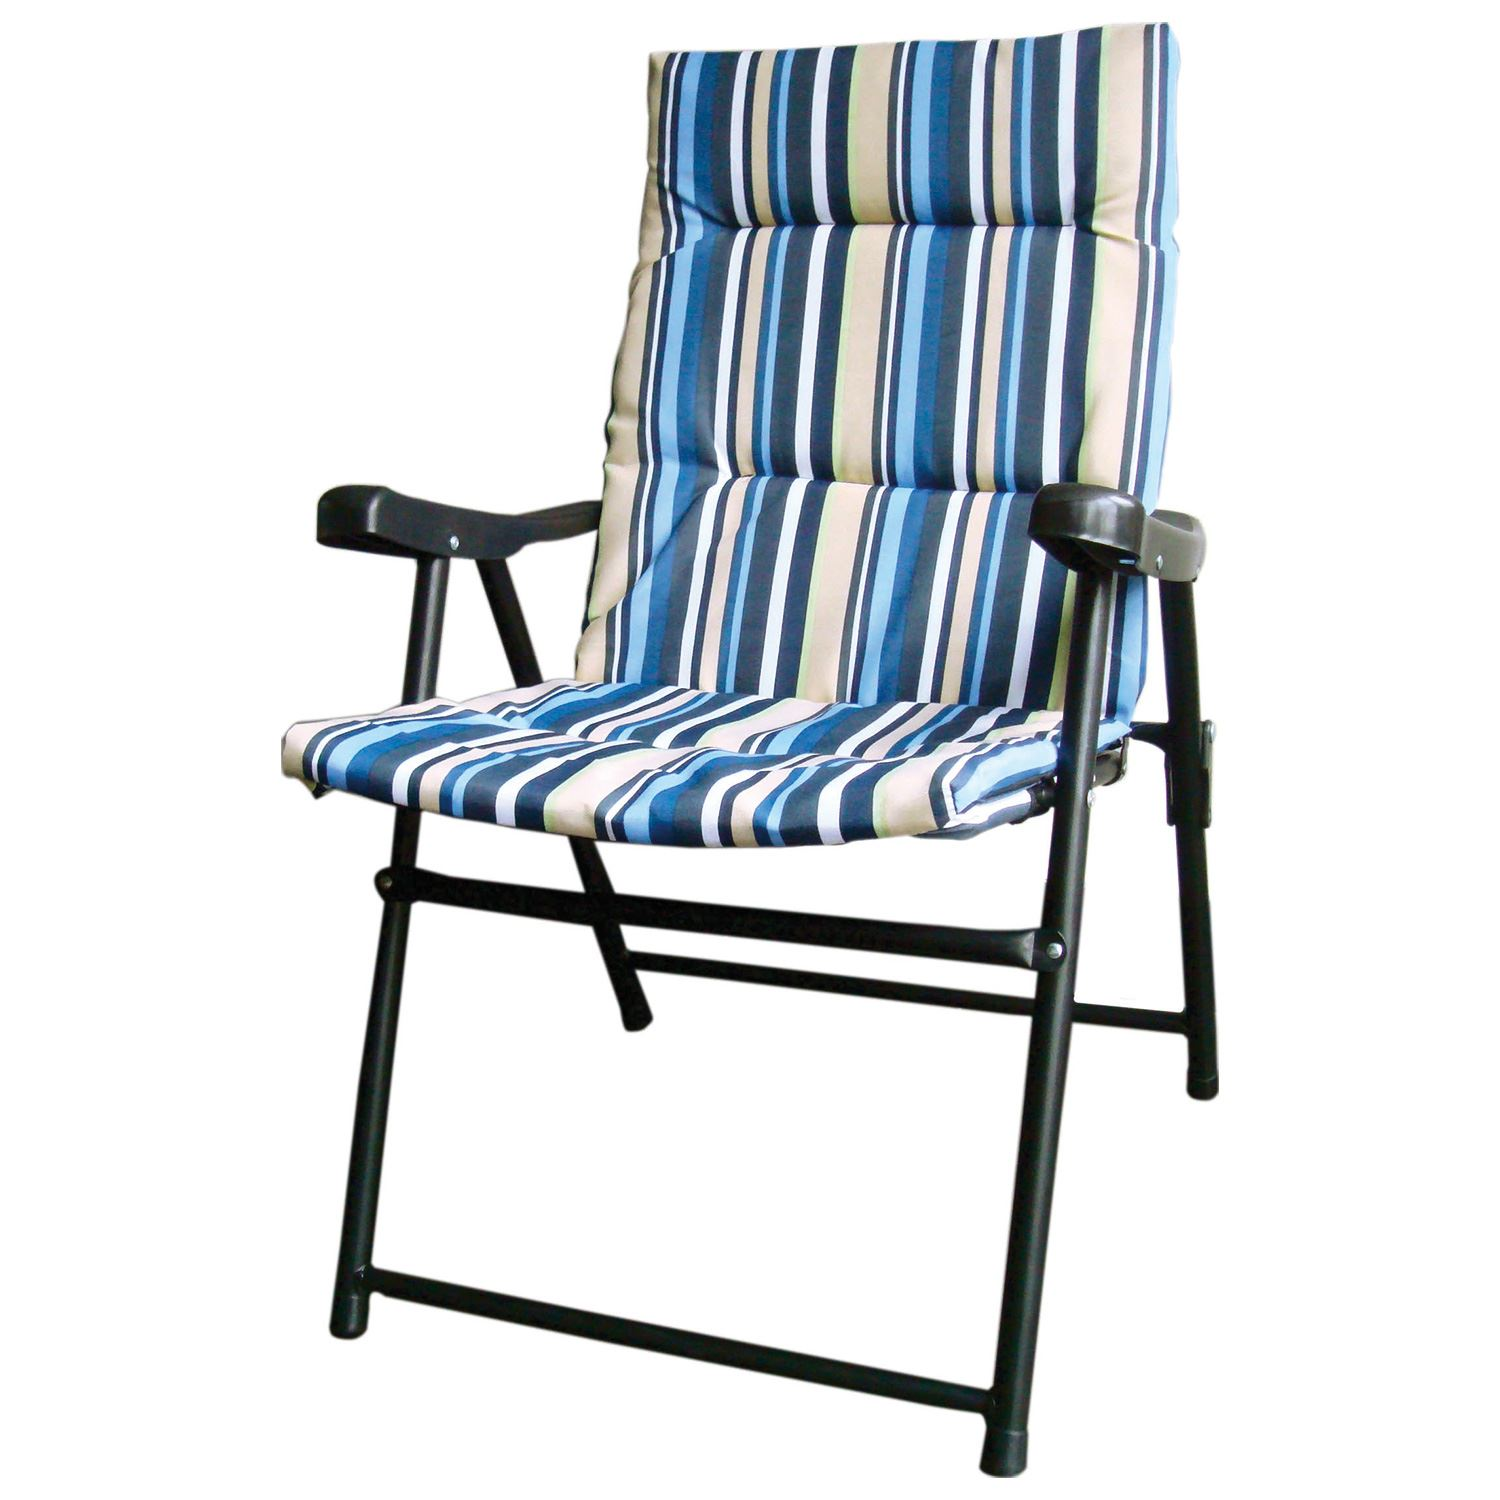 new padded folding outdoor garden camping picnic chair. Black Bedroom Furniture Sets. Home Design Ideas